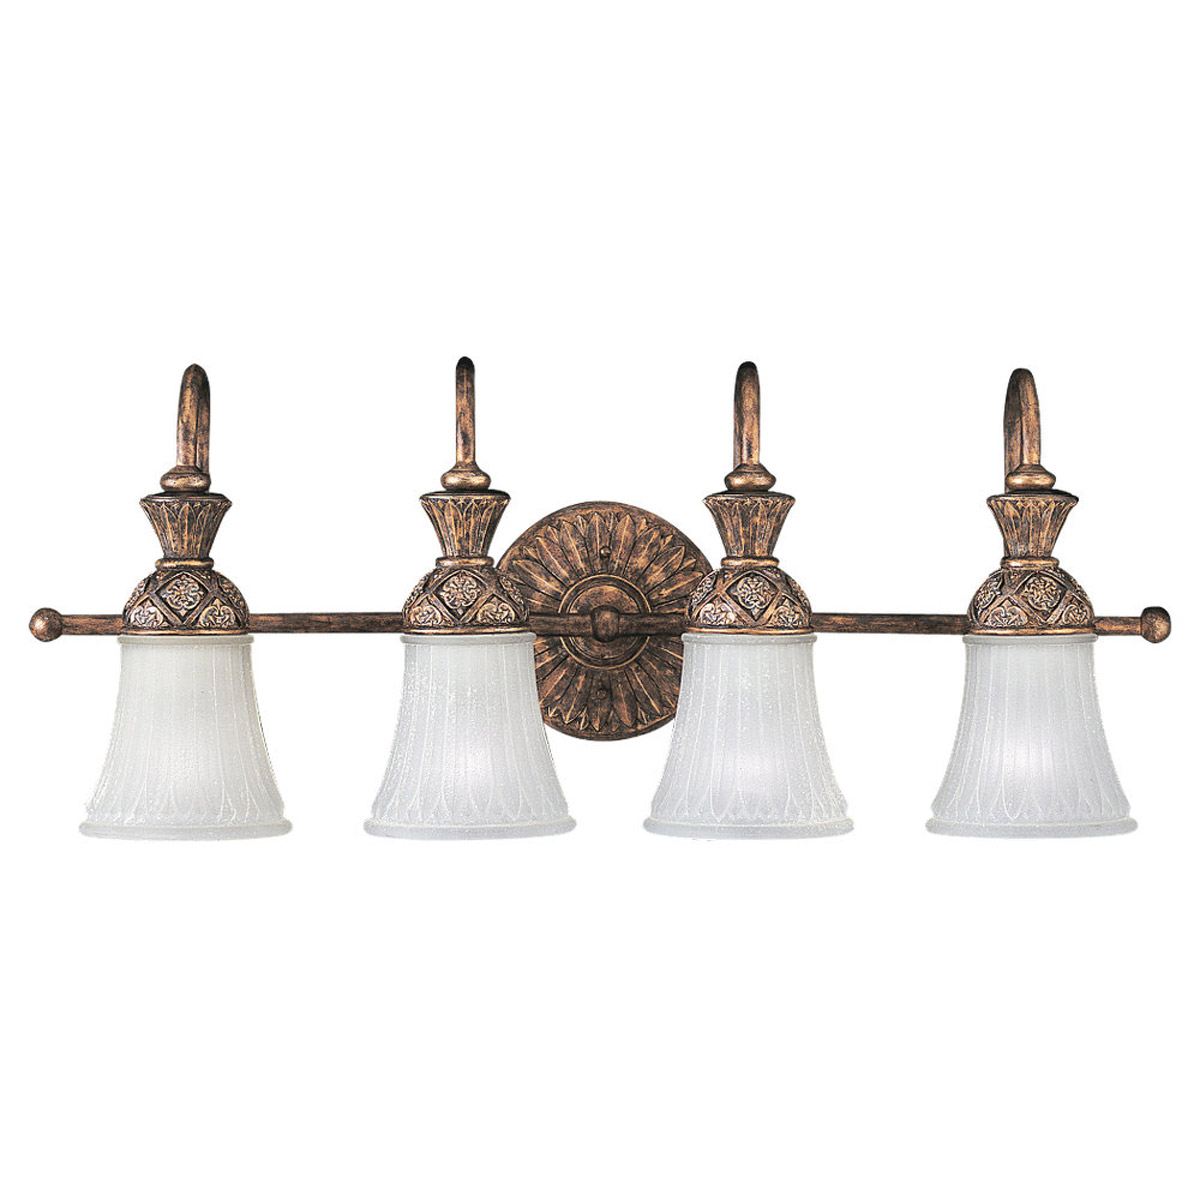 Sea Gull Lighting Highlands 4 Light Bath Vanity in Regal Bronze 47253-758